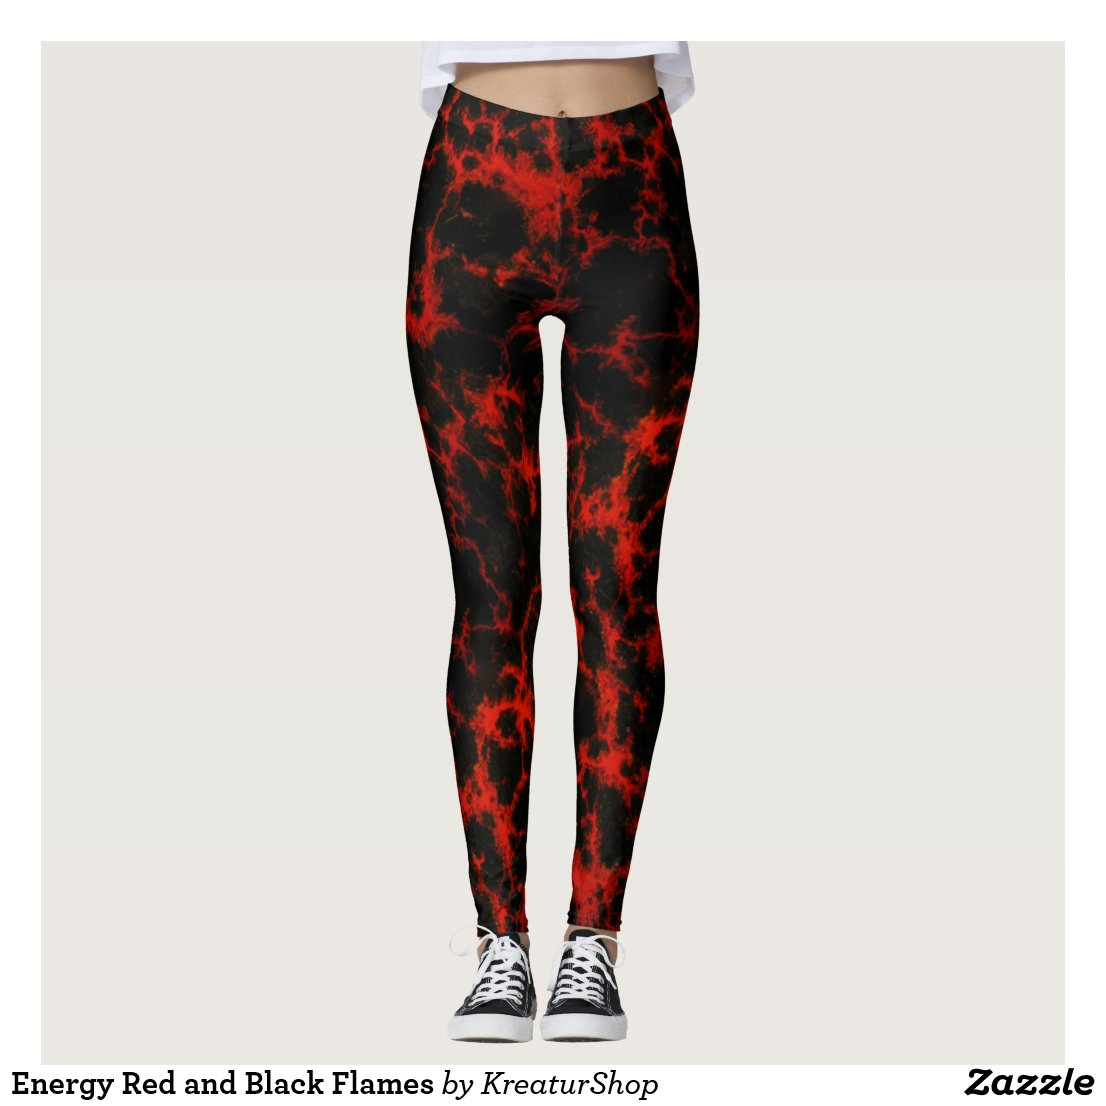 Energy Red and Black Flames